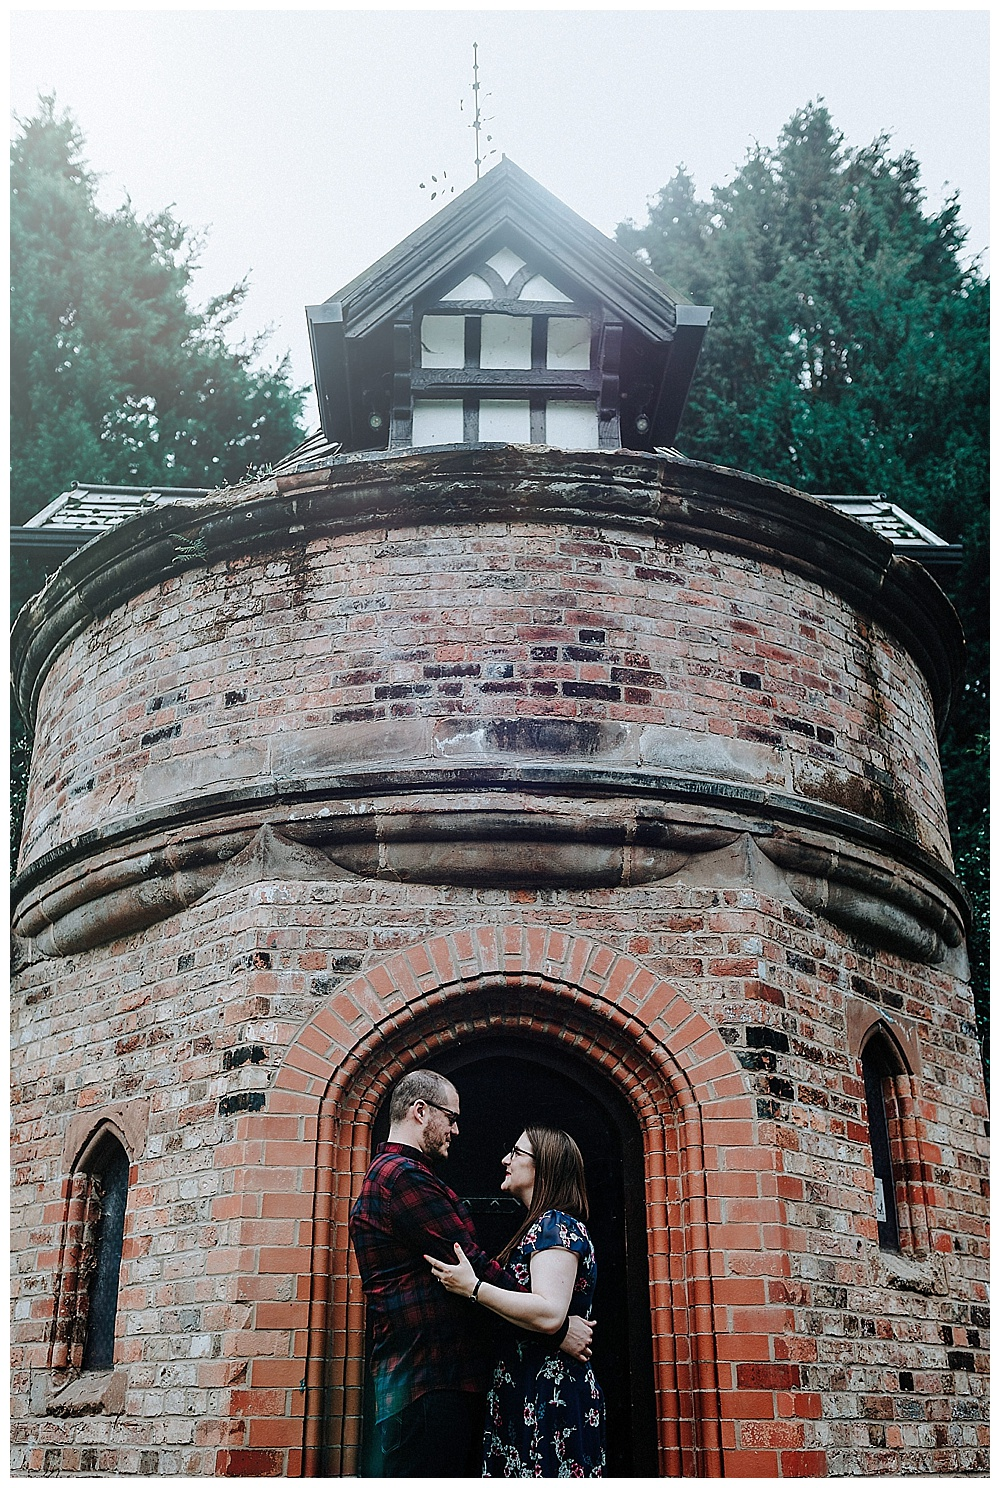 Louise and David looking at each other in front of the tower at Walkden Garden's in Sale